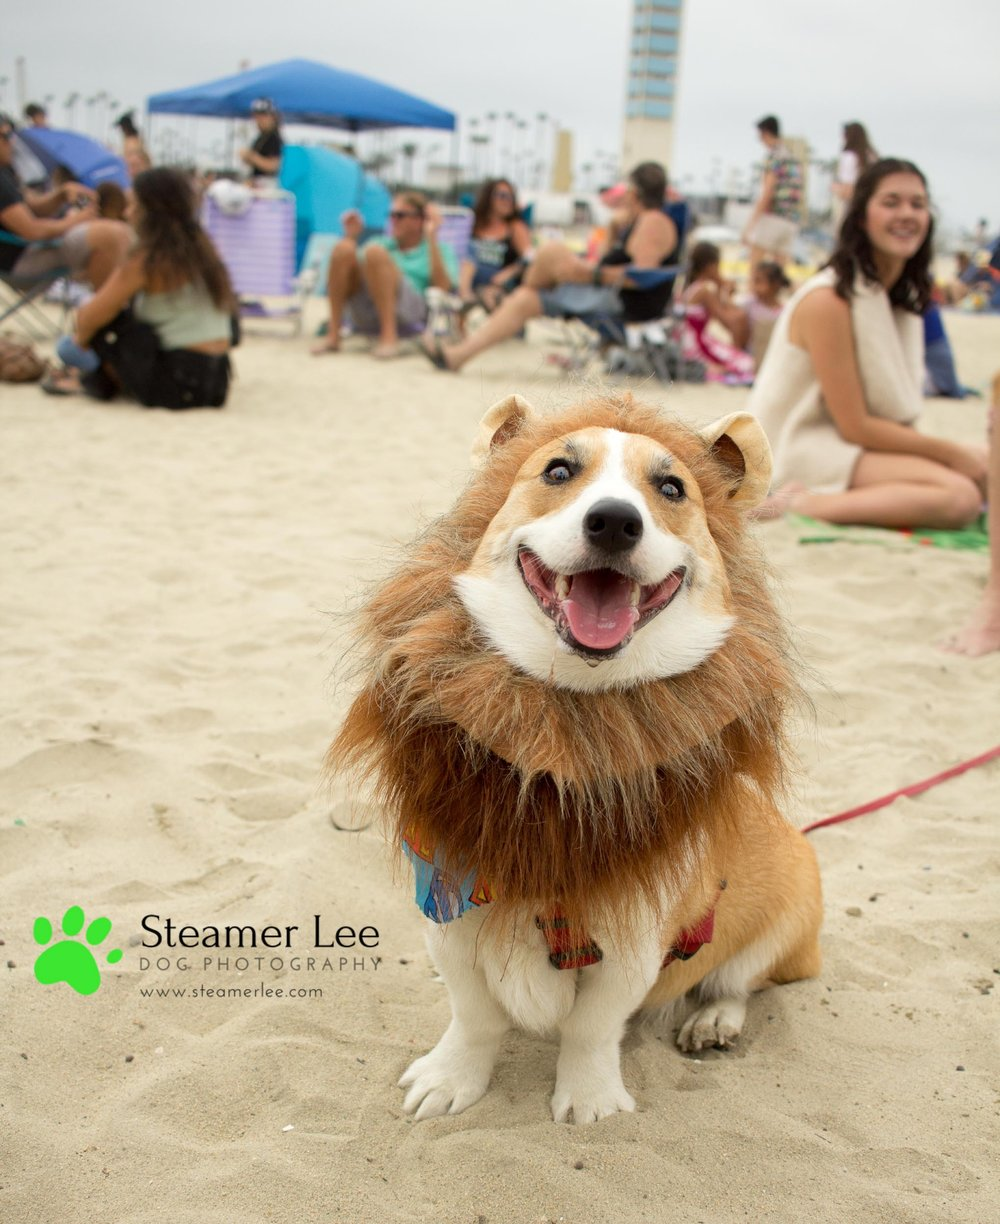 Steamer Lee Dog Photography - July 2017 So Cal Corgi Beach Day - Vol.2 - 18.jpg